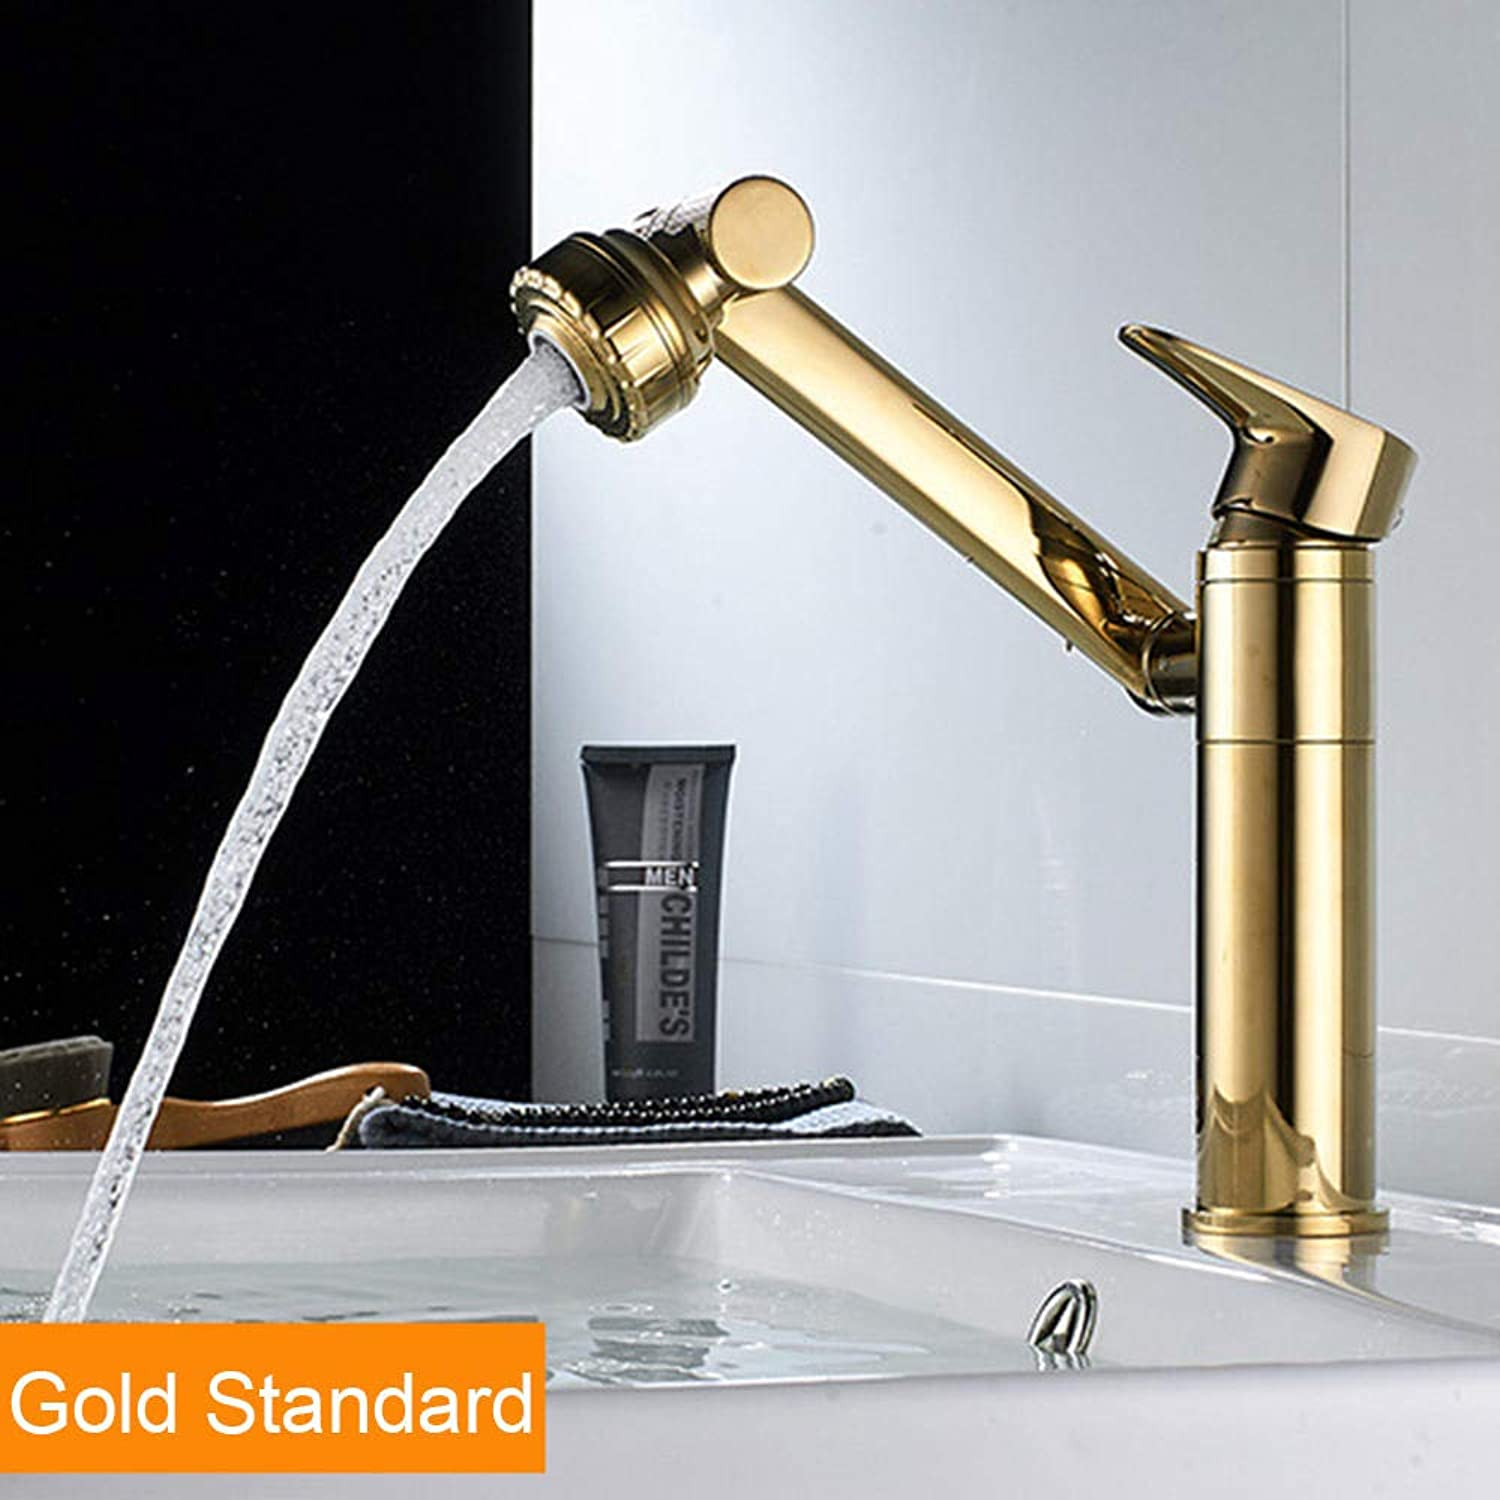 HSFKJDHF Bathroom Household Table Basin Copper Washbasin Kitchen Hot And Cold Water Faucet Washbasin Basin Can redate Kitchen Faucet@gold Standard